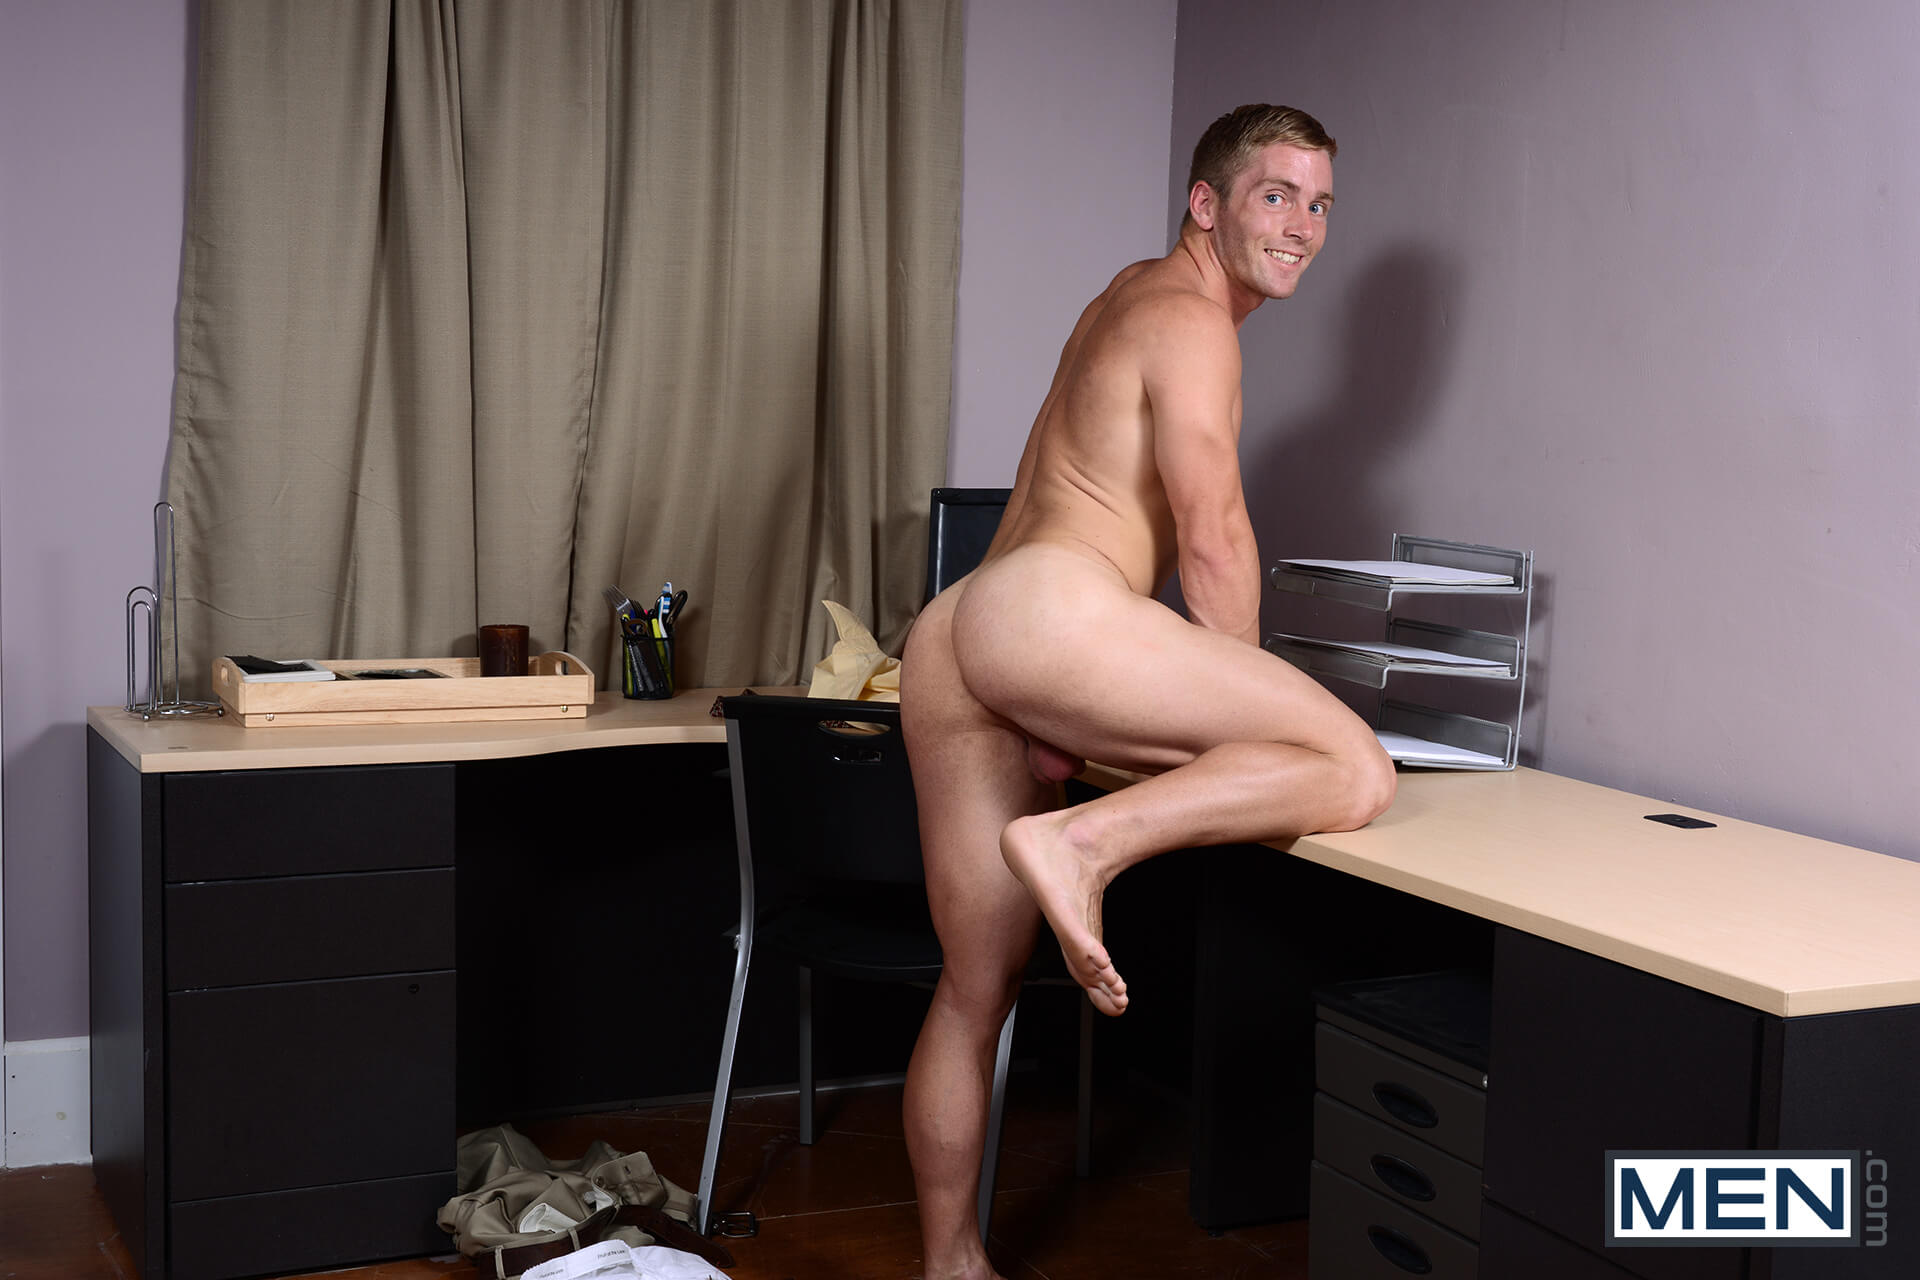 men str8 to gay recruiting part 1 johnny rapid scott riley gay porn blog image 7